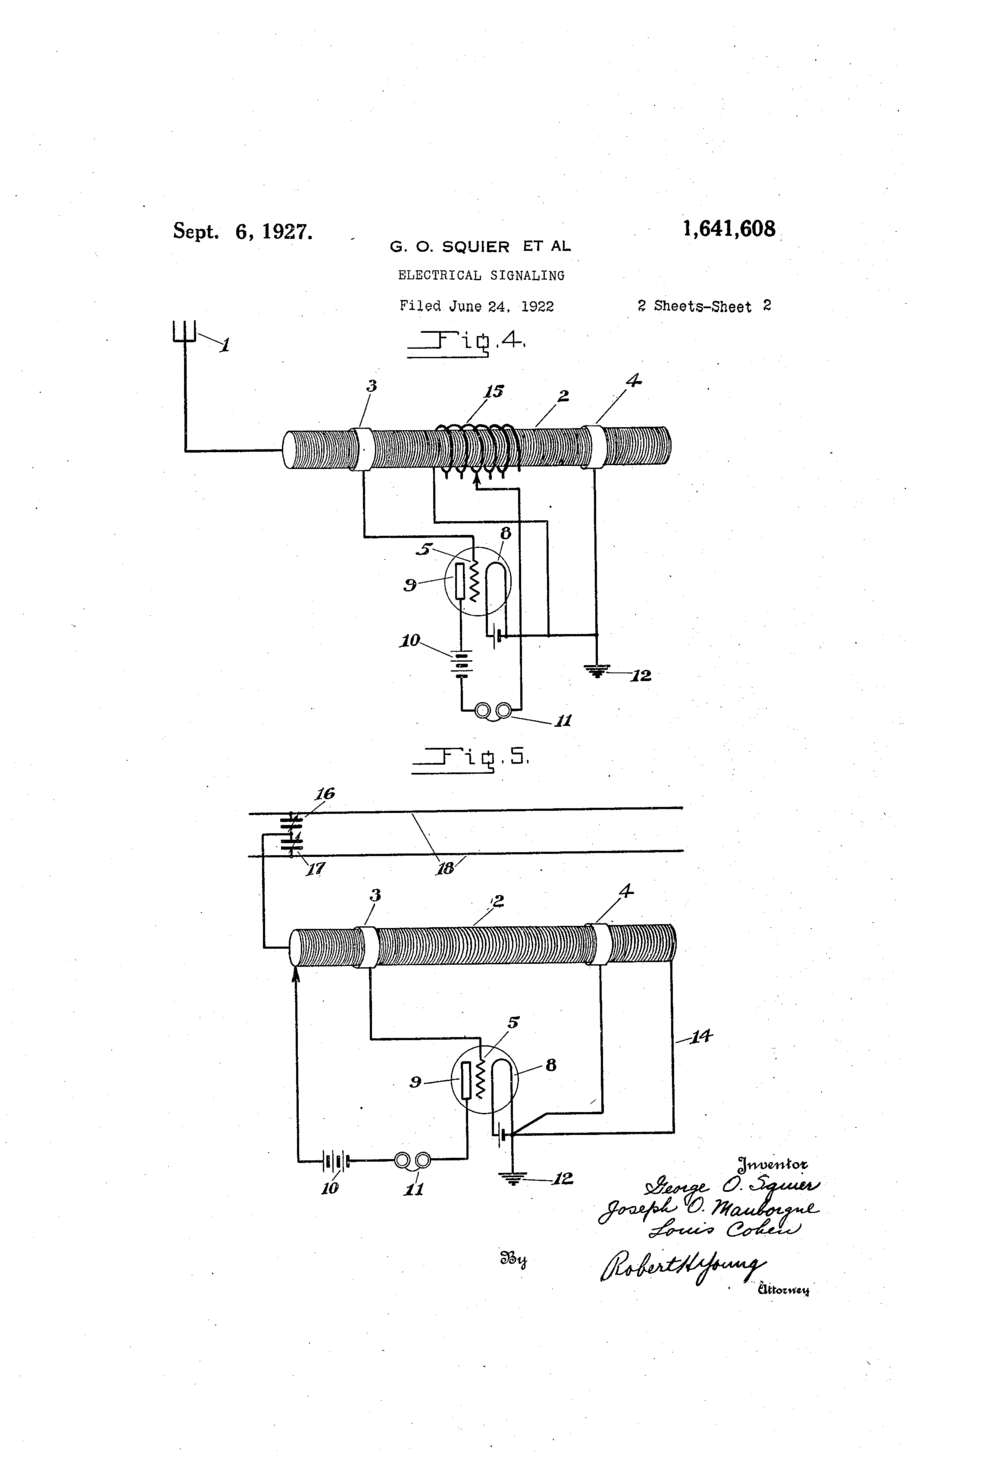 Squier, George O., Joseph O. Mauborgne, and Louis Cohen.  Electrical Signaling Patent 1.641.648:   Sheet 2 of 2.  06 Sept. 1927.